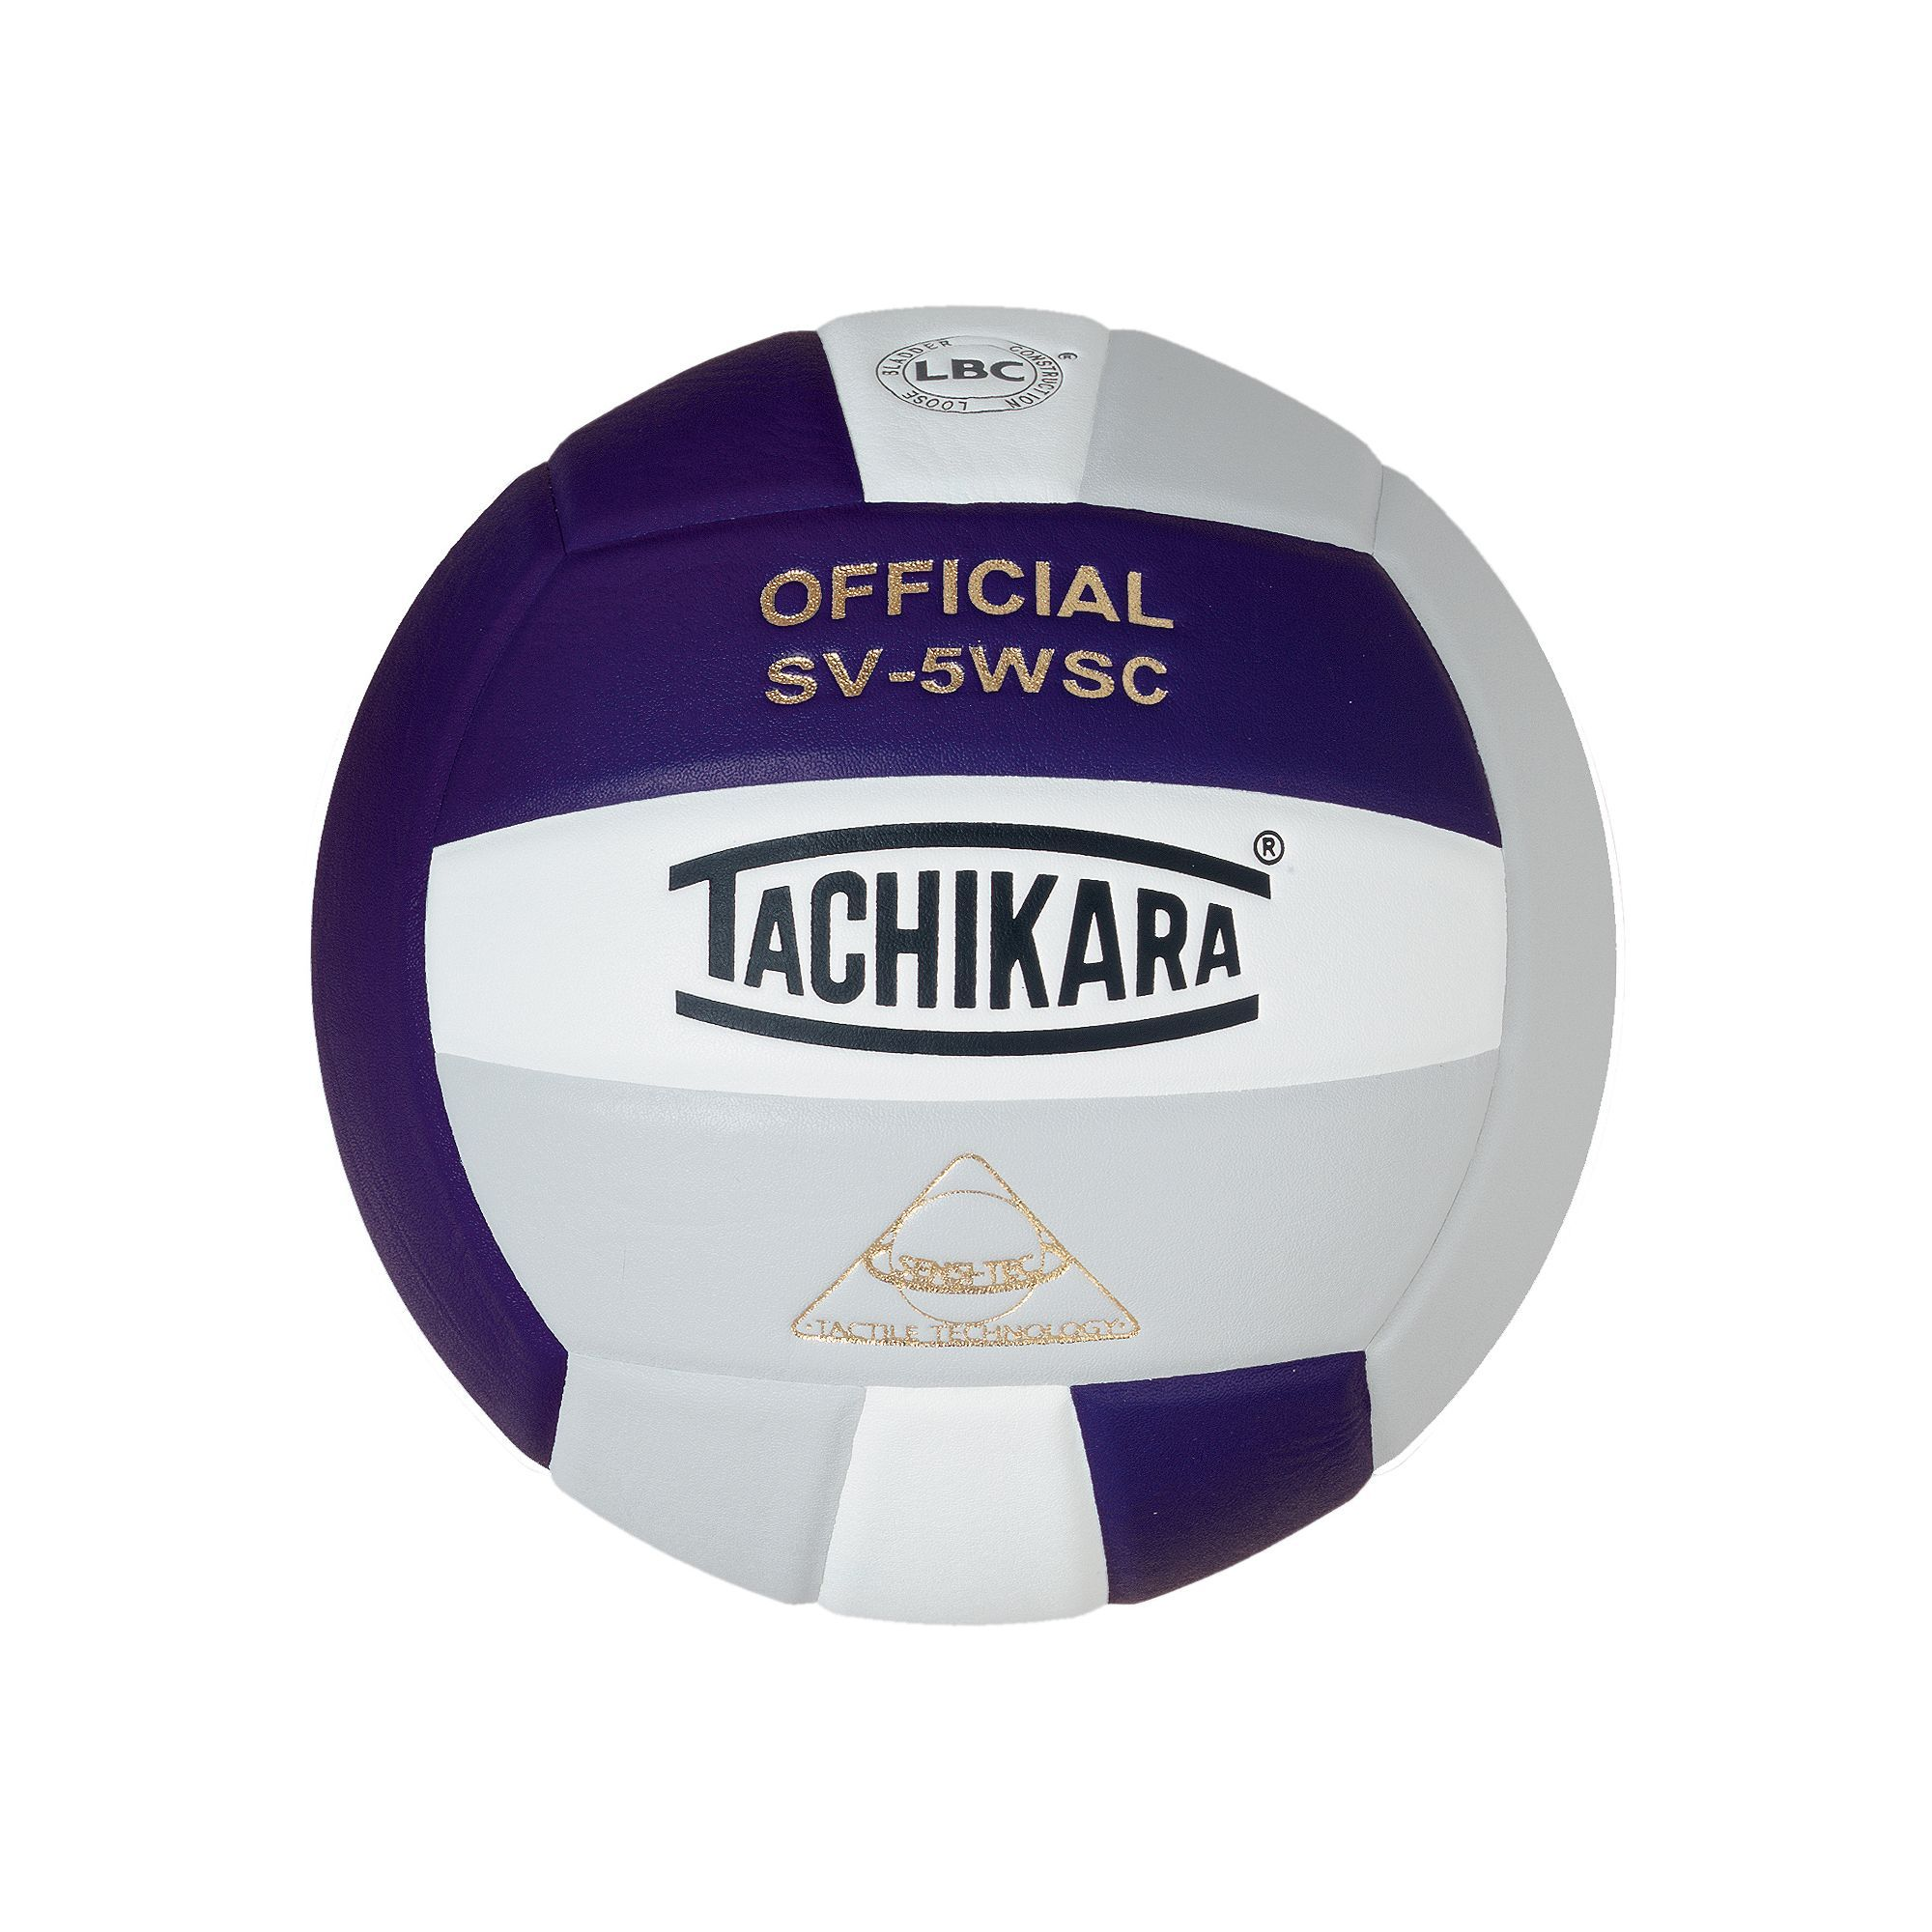 Tachikara Official Sv5wsc Microfiber Composite Leather Volleyball Volleyballs Indoor Volleyball